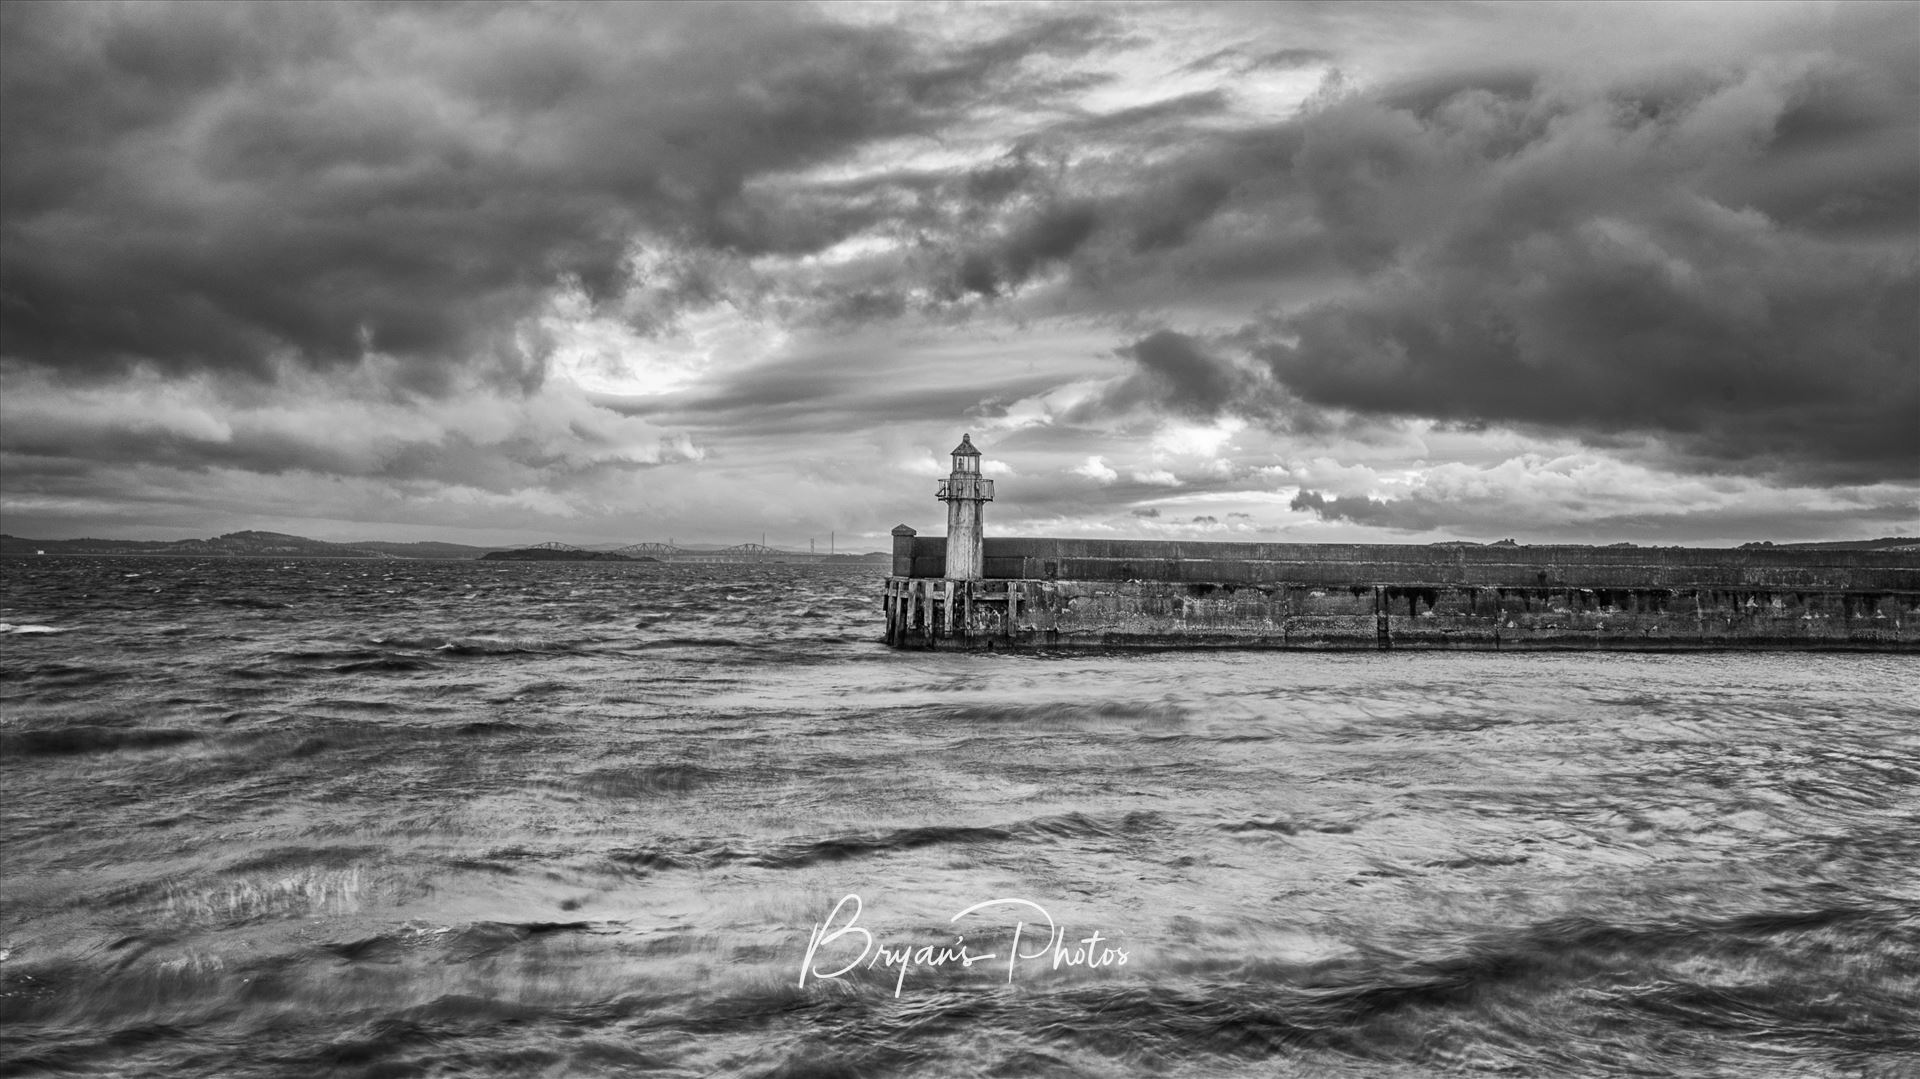 The Lighthouse A black and white photograph of the lighthouse at Burntisland Harbour on the Fife coast. by Bryans Photos